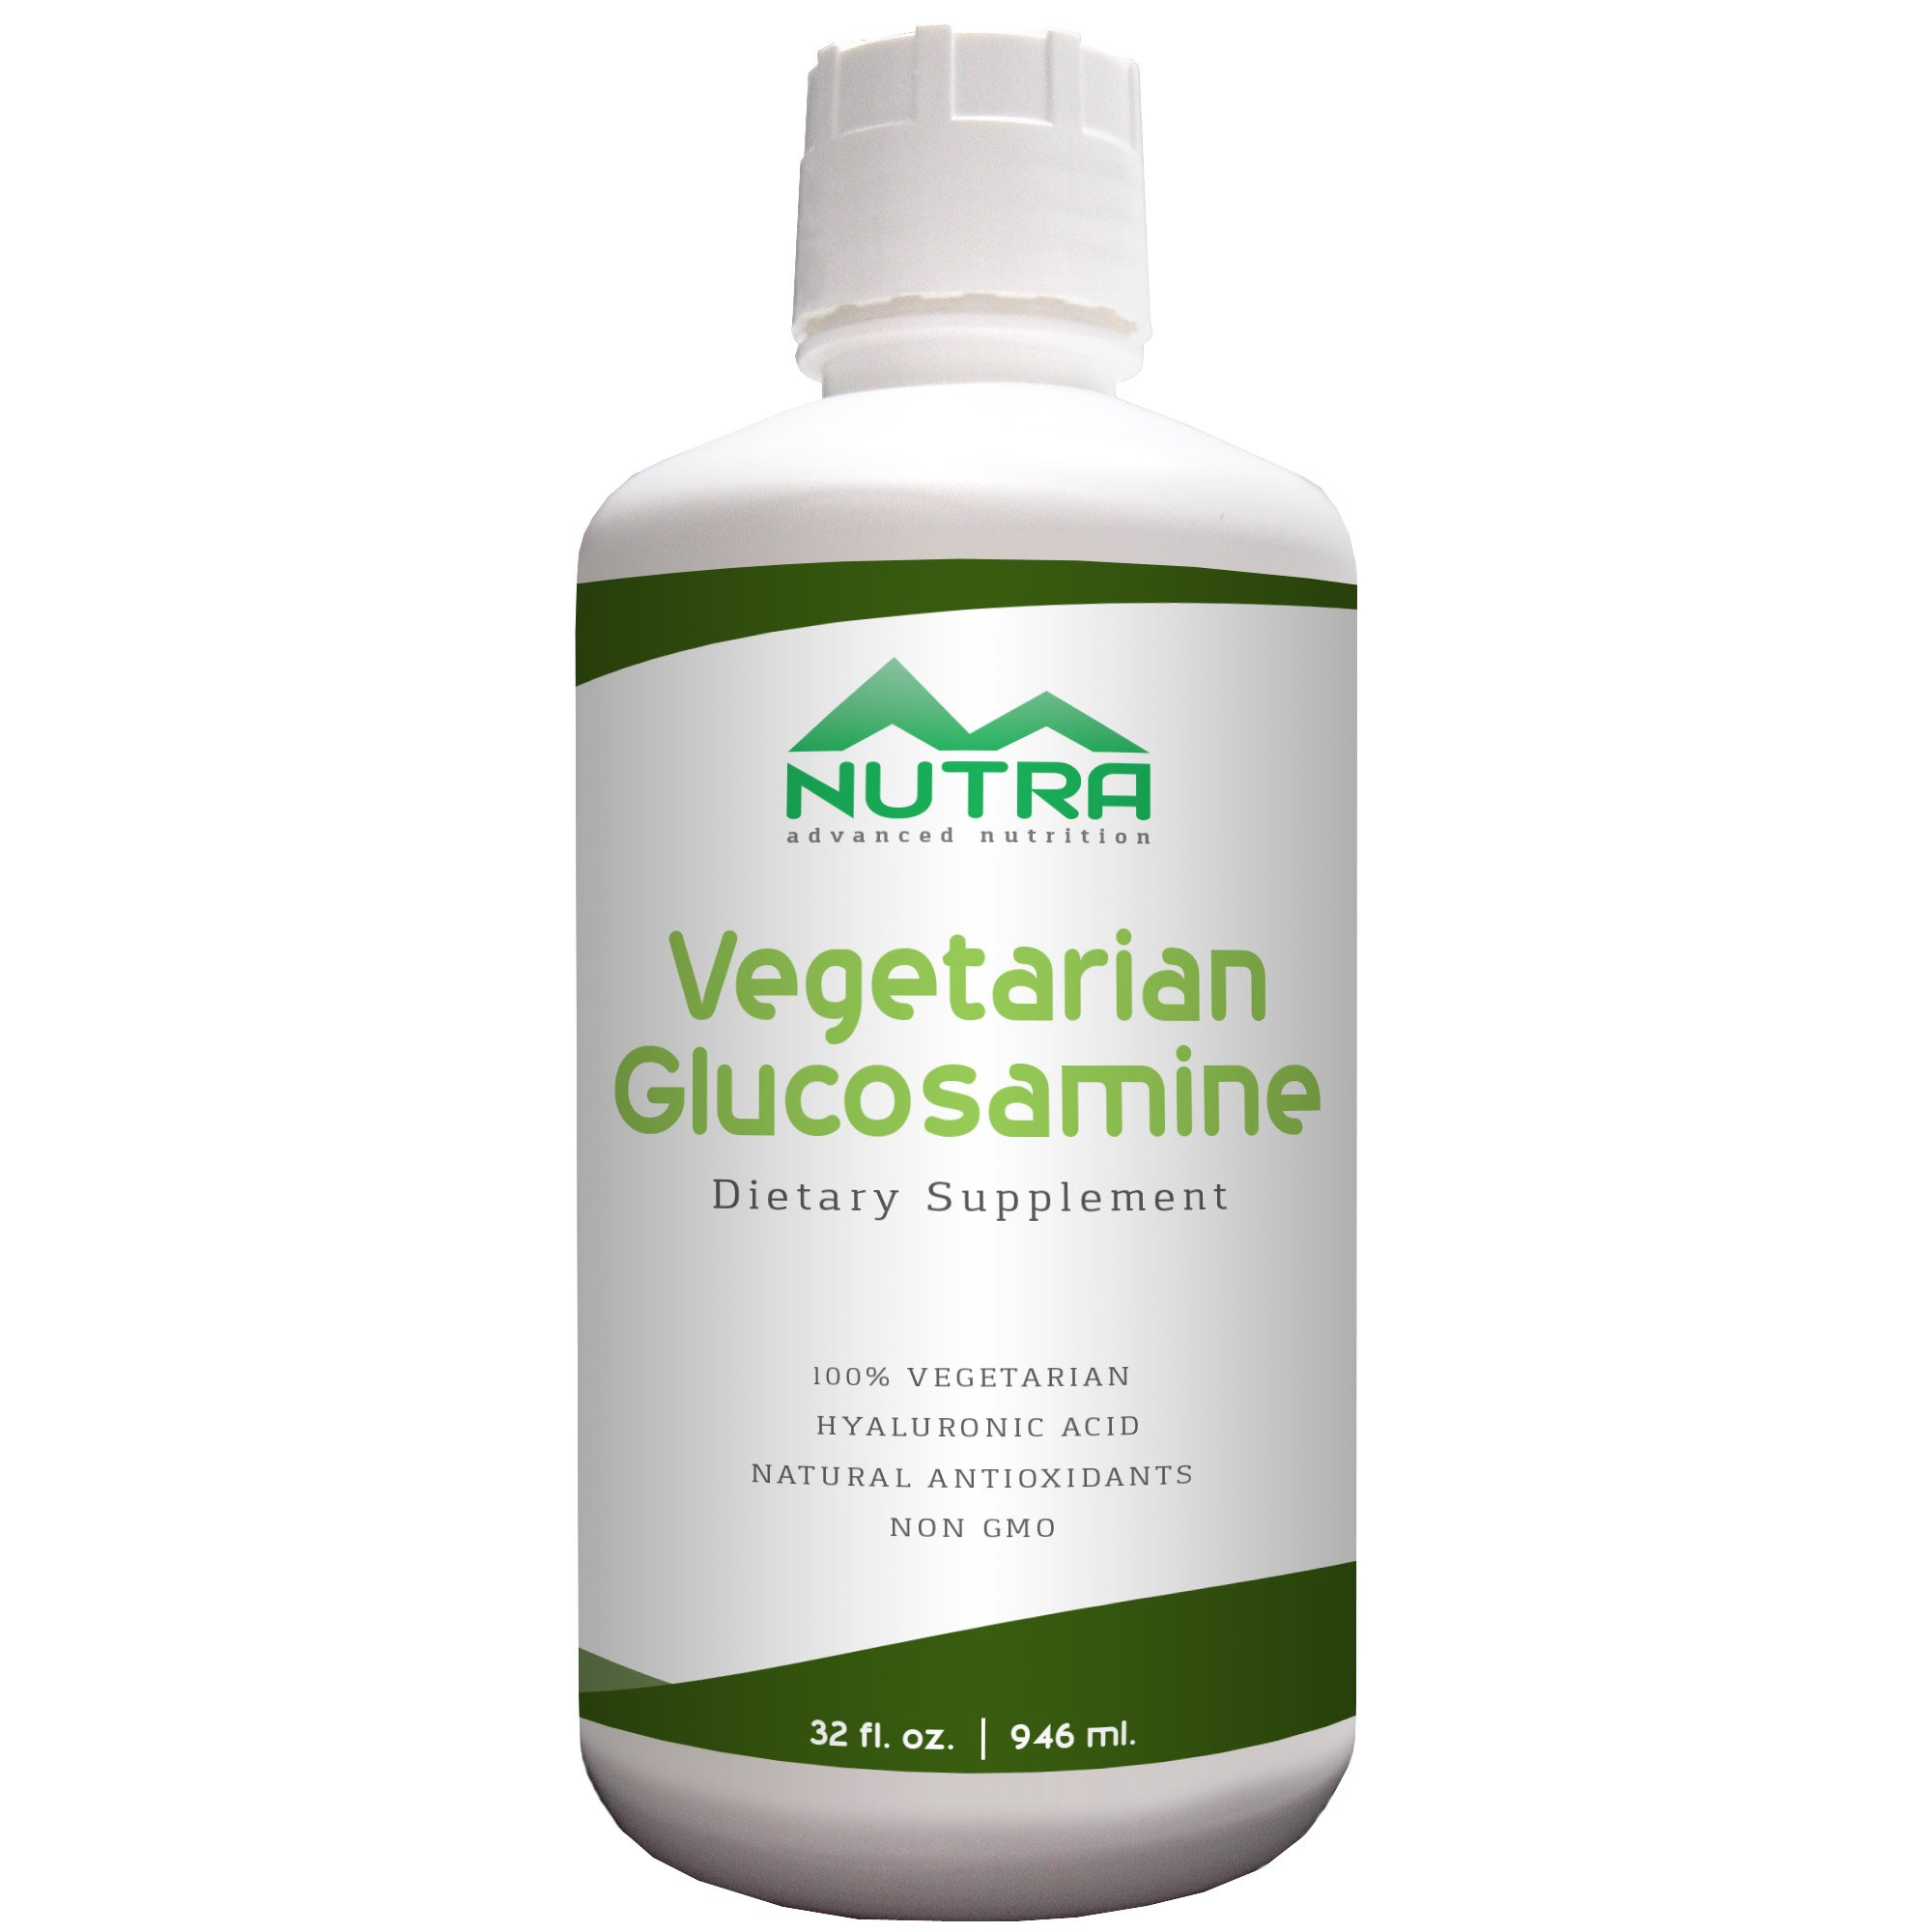 Private Label Vegetarian Glucosamine Supplement Manufacturer